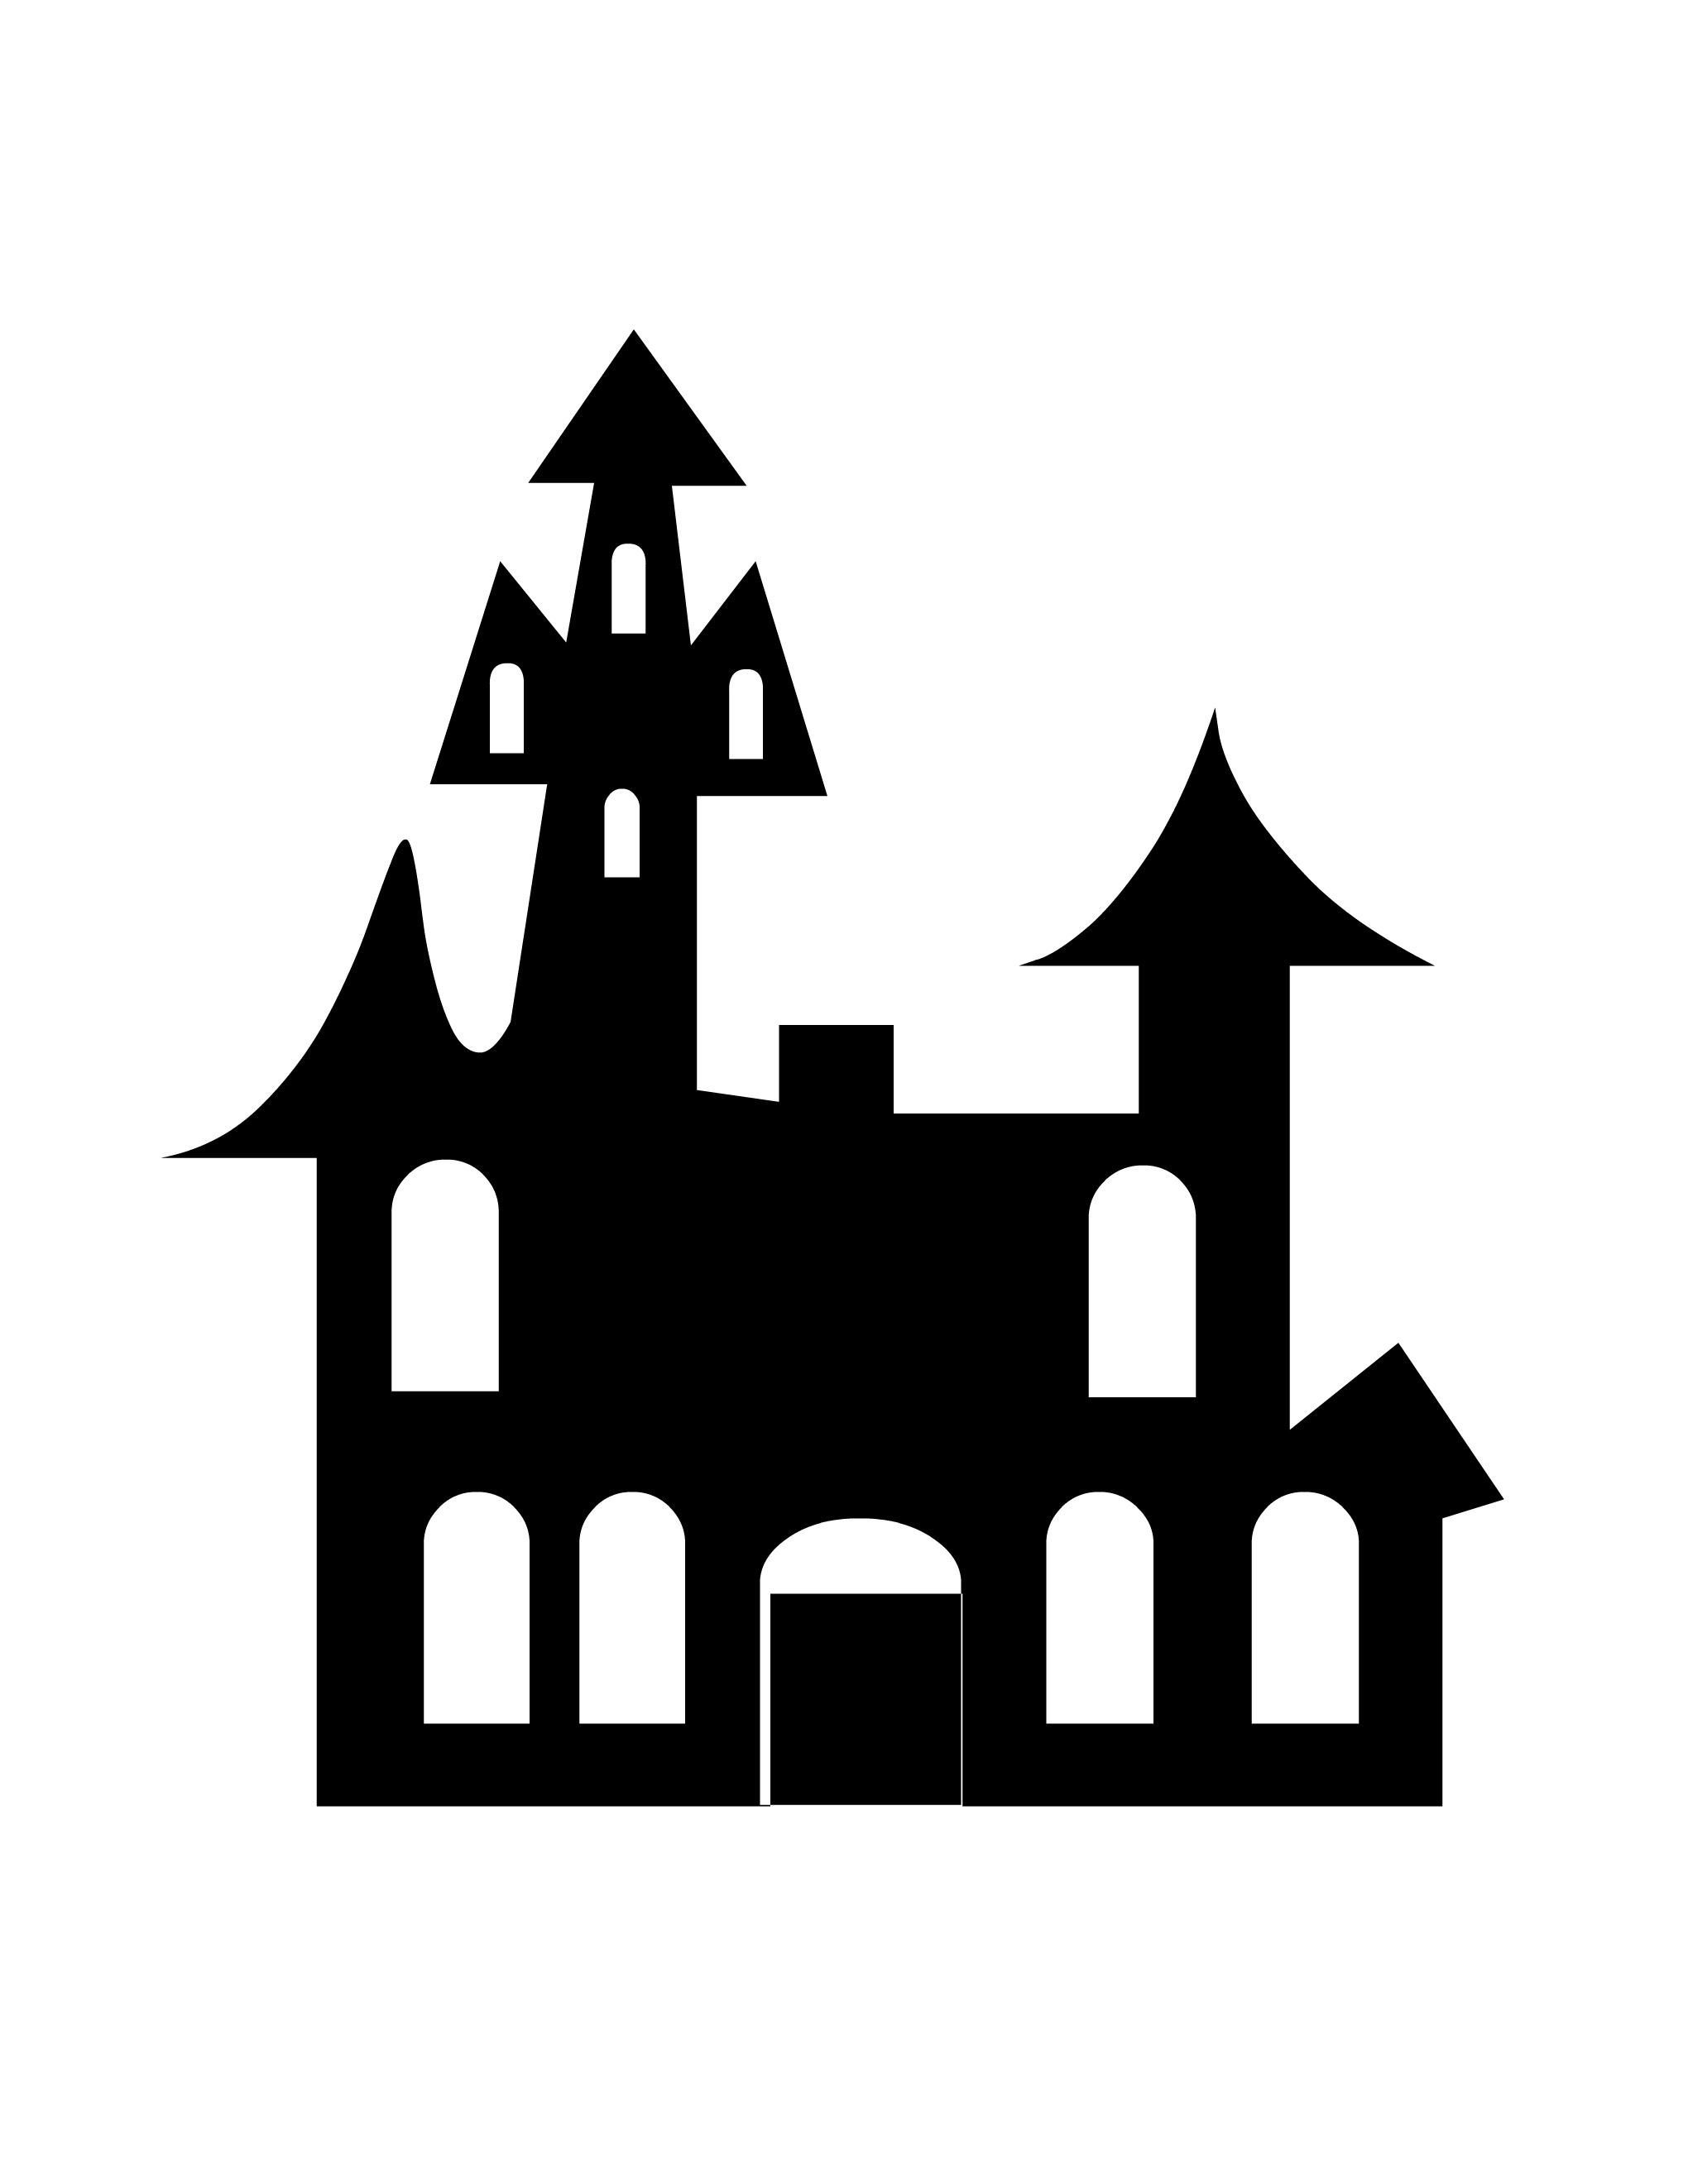 Haunted clipart silhouette #10